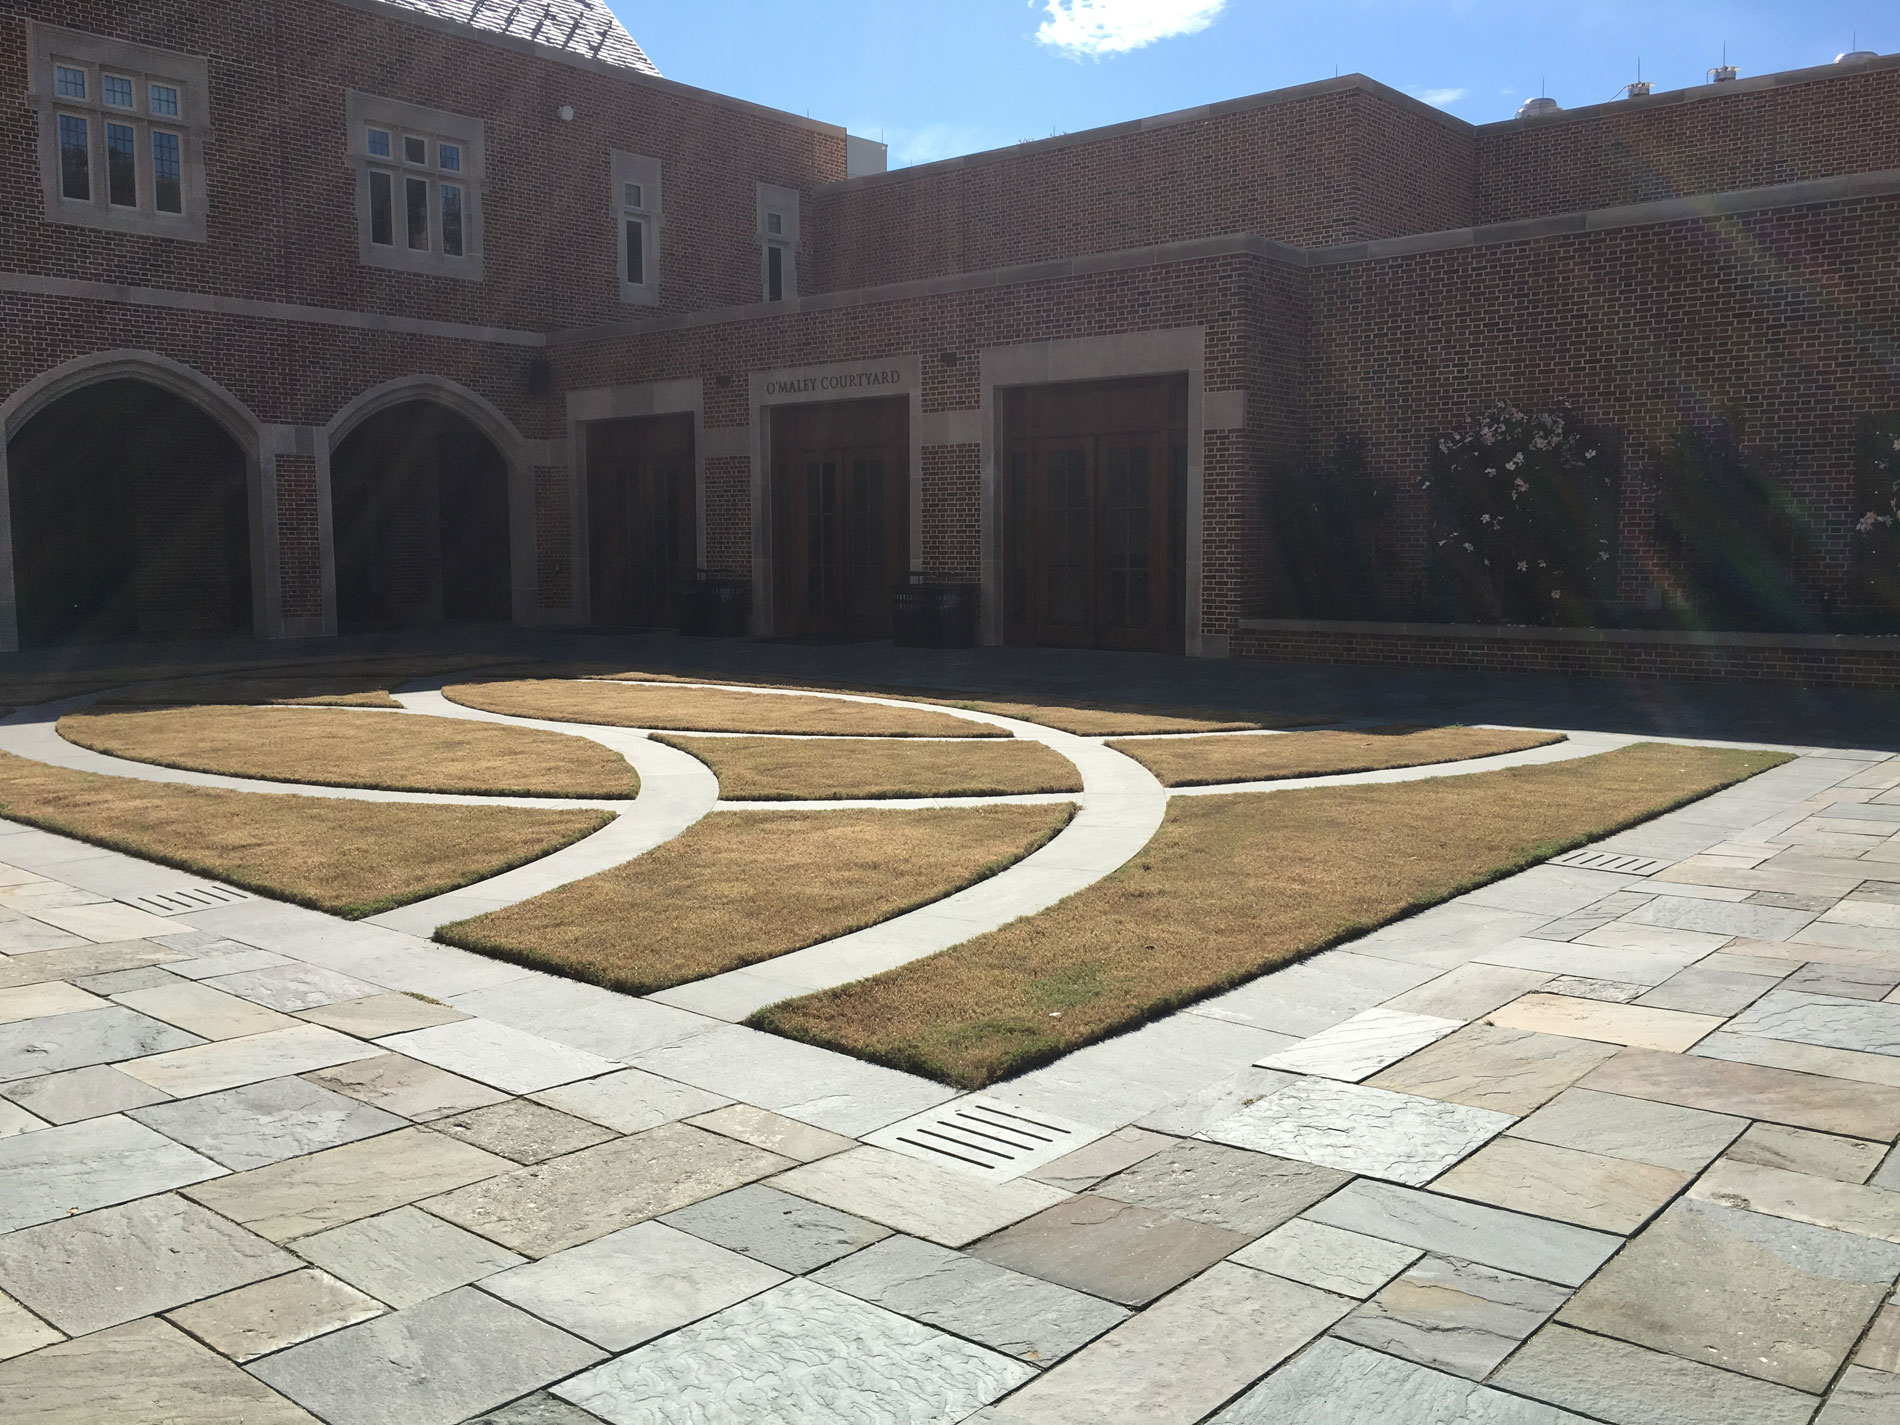 Bermuda Grass browns out seasonally into a color that is beautiful next to the variegated bluestone.